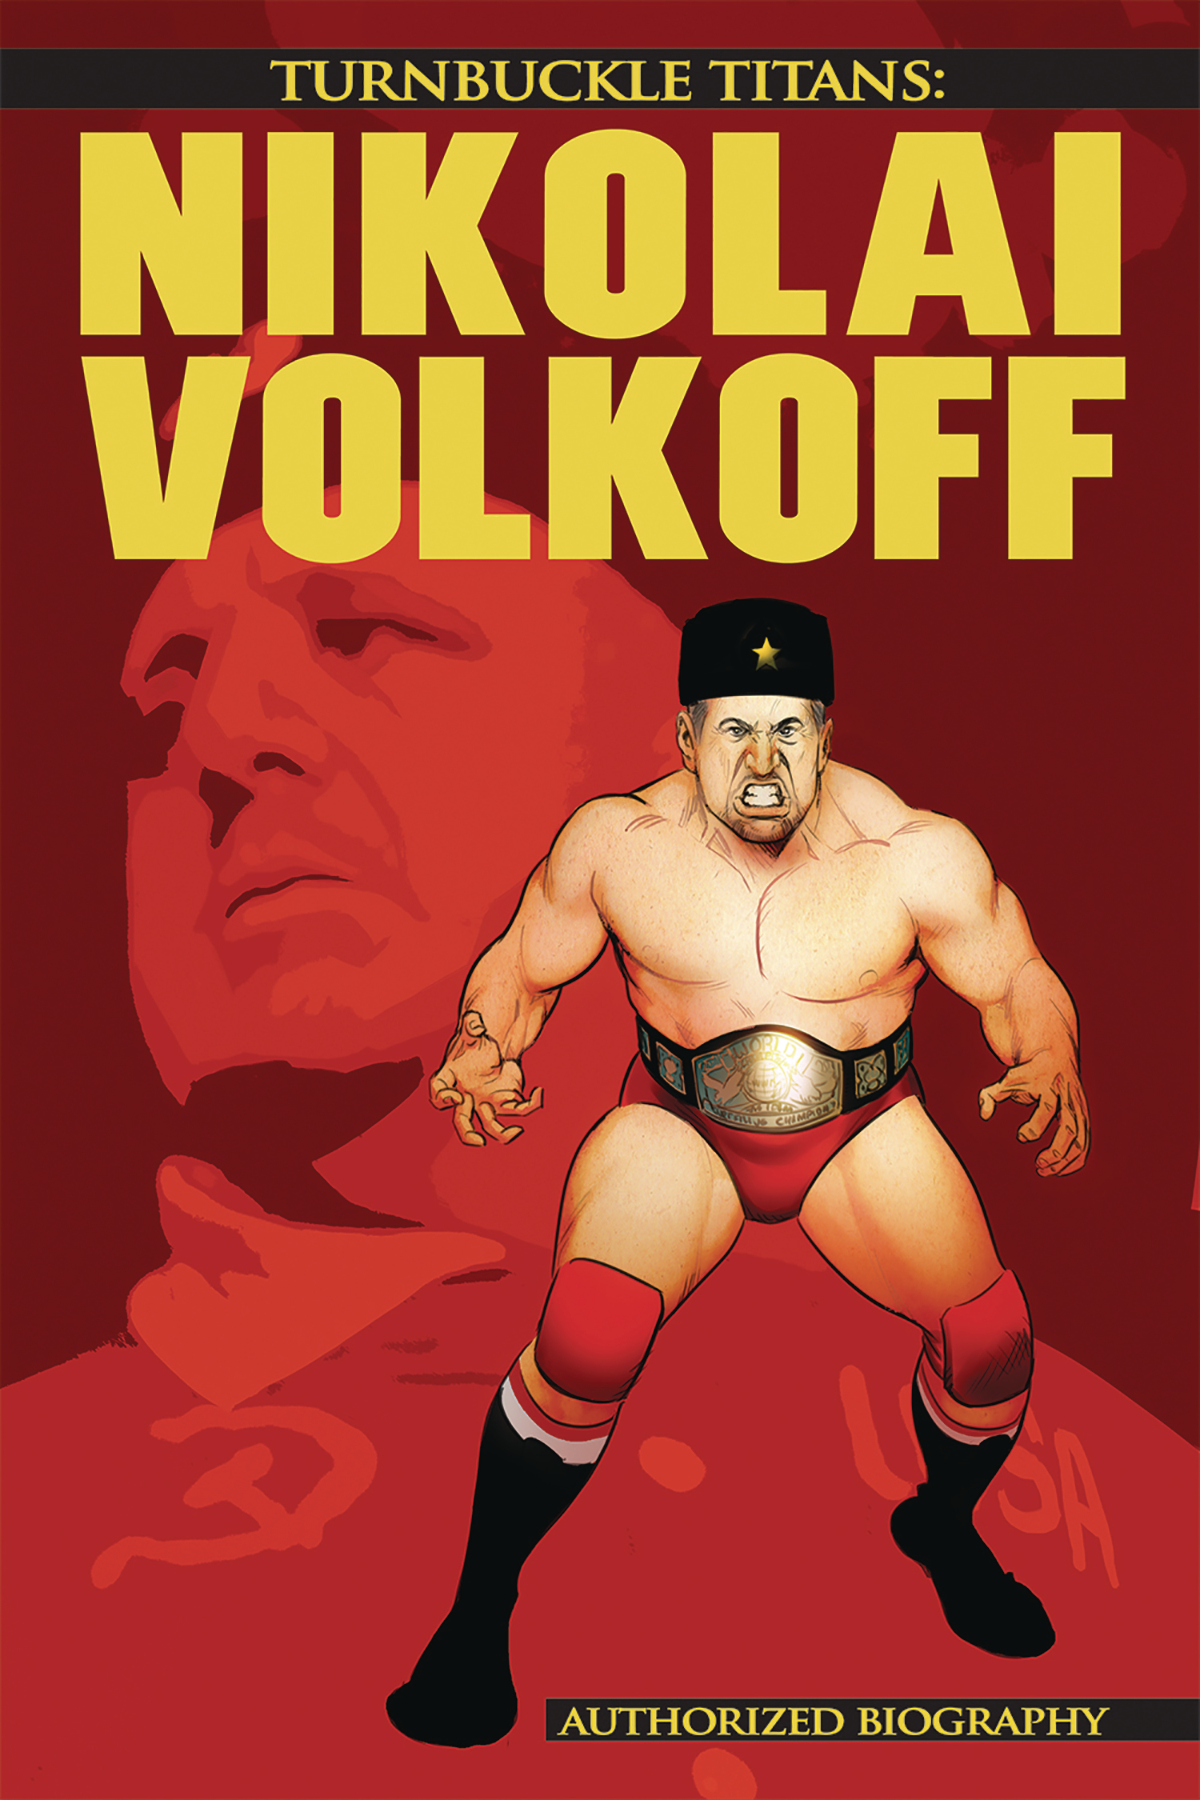 TURNBUCKLE TITANS #1 NIKOLAI VOLKOFF